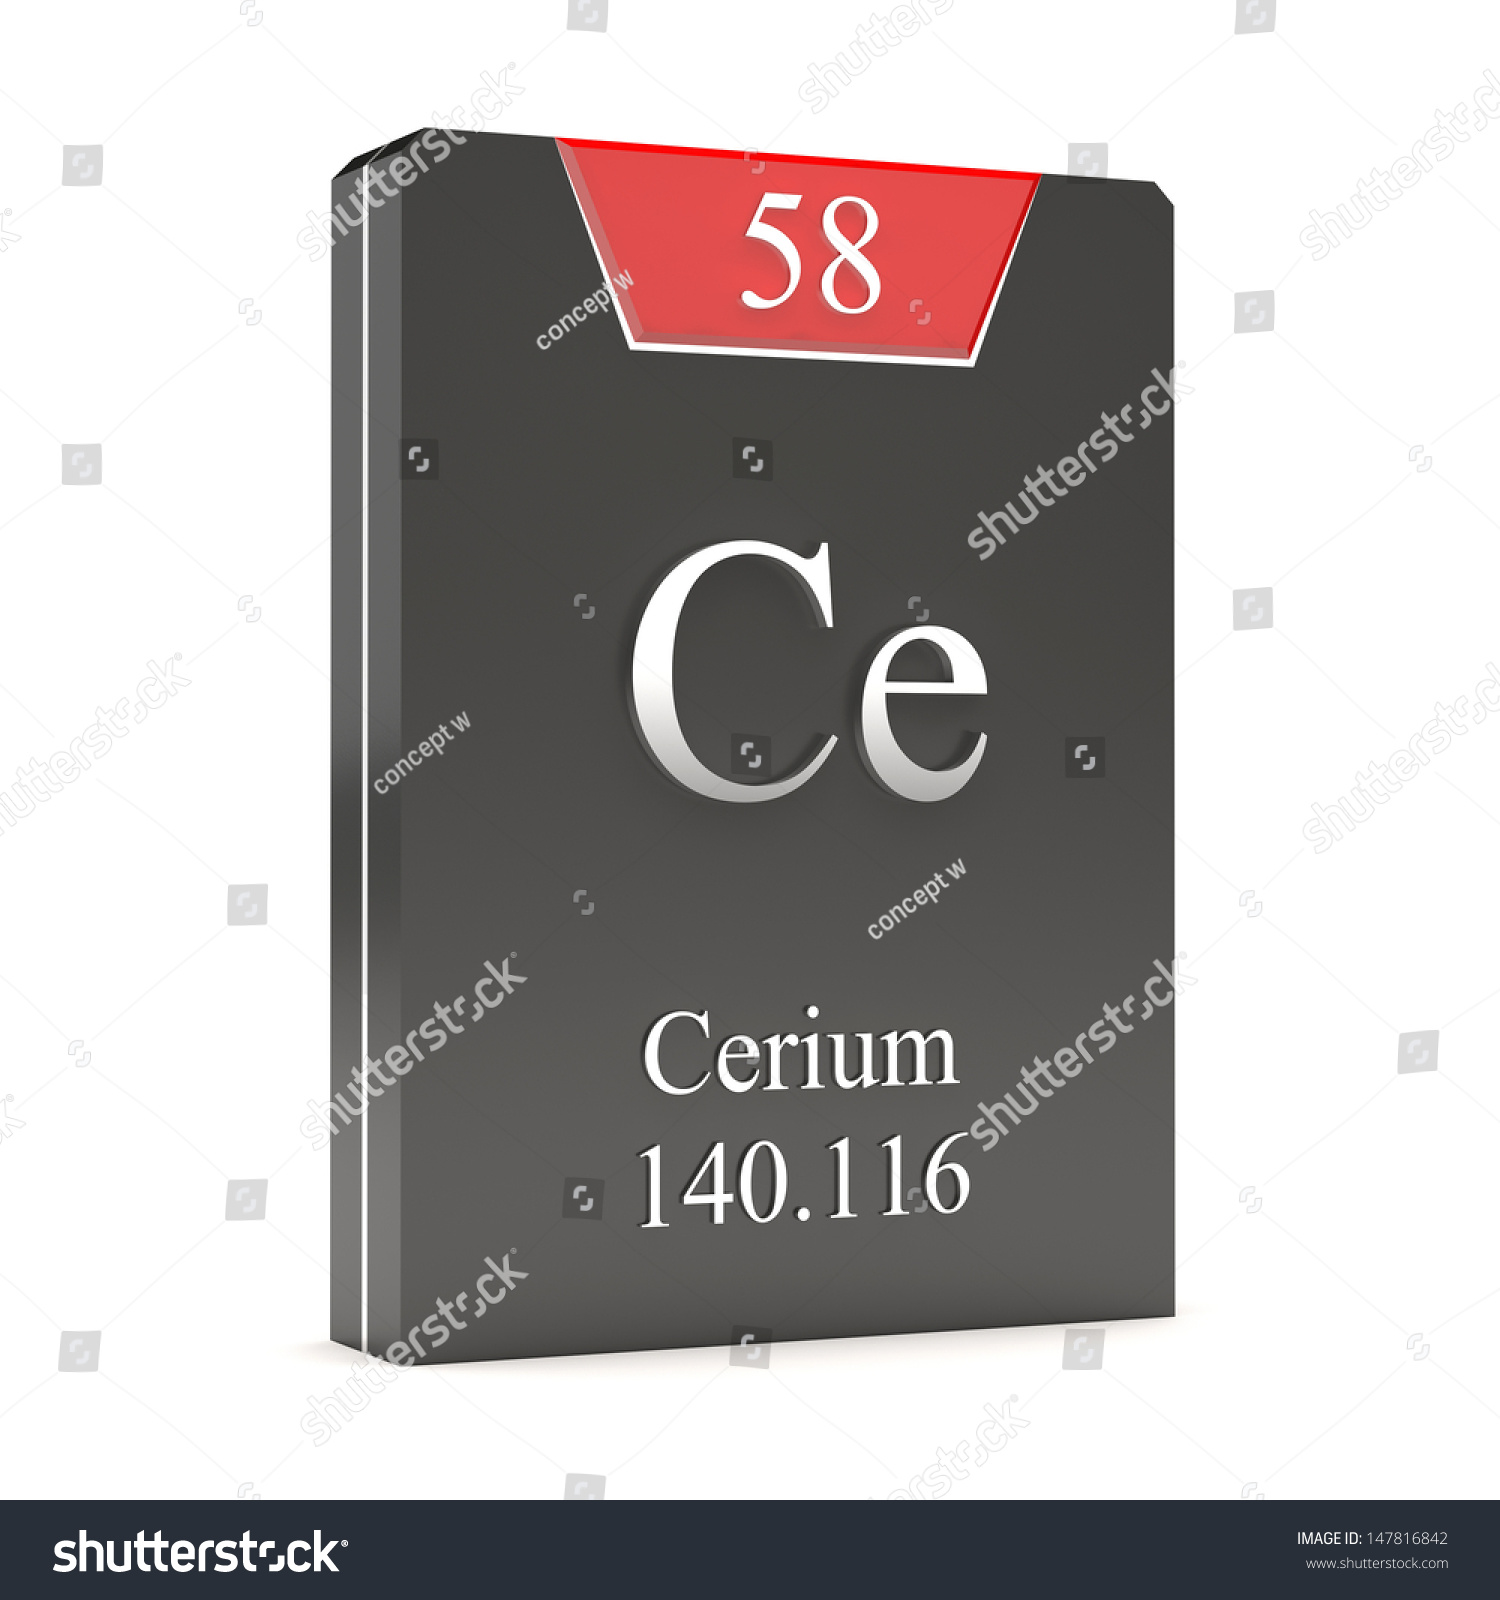 14 periodic table choice image periodic table images periodic table song hindi images periodic table images trick to memorize periodic table images periodic table gamestrikefo Choice Image